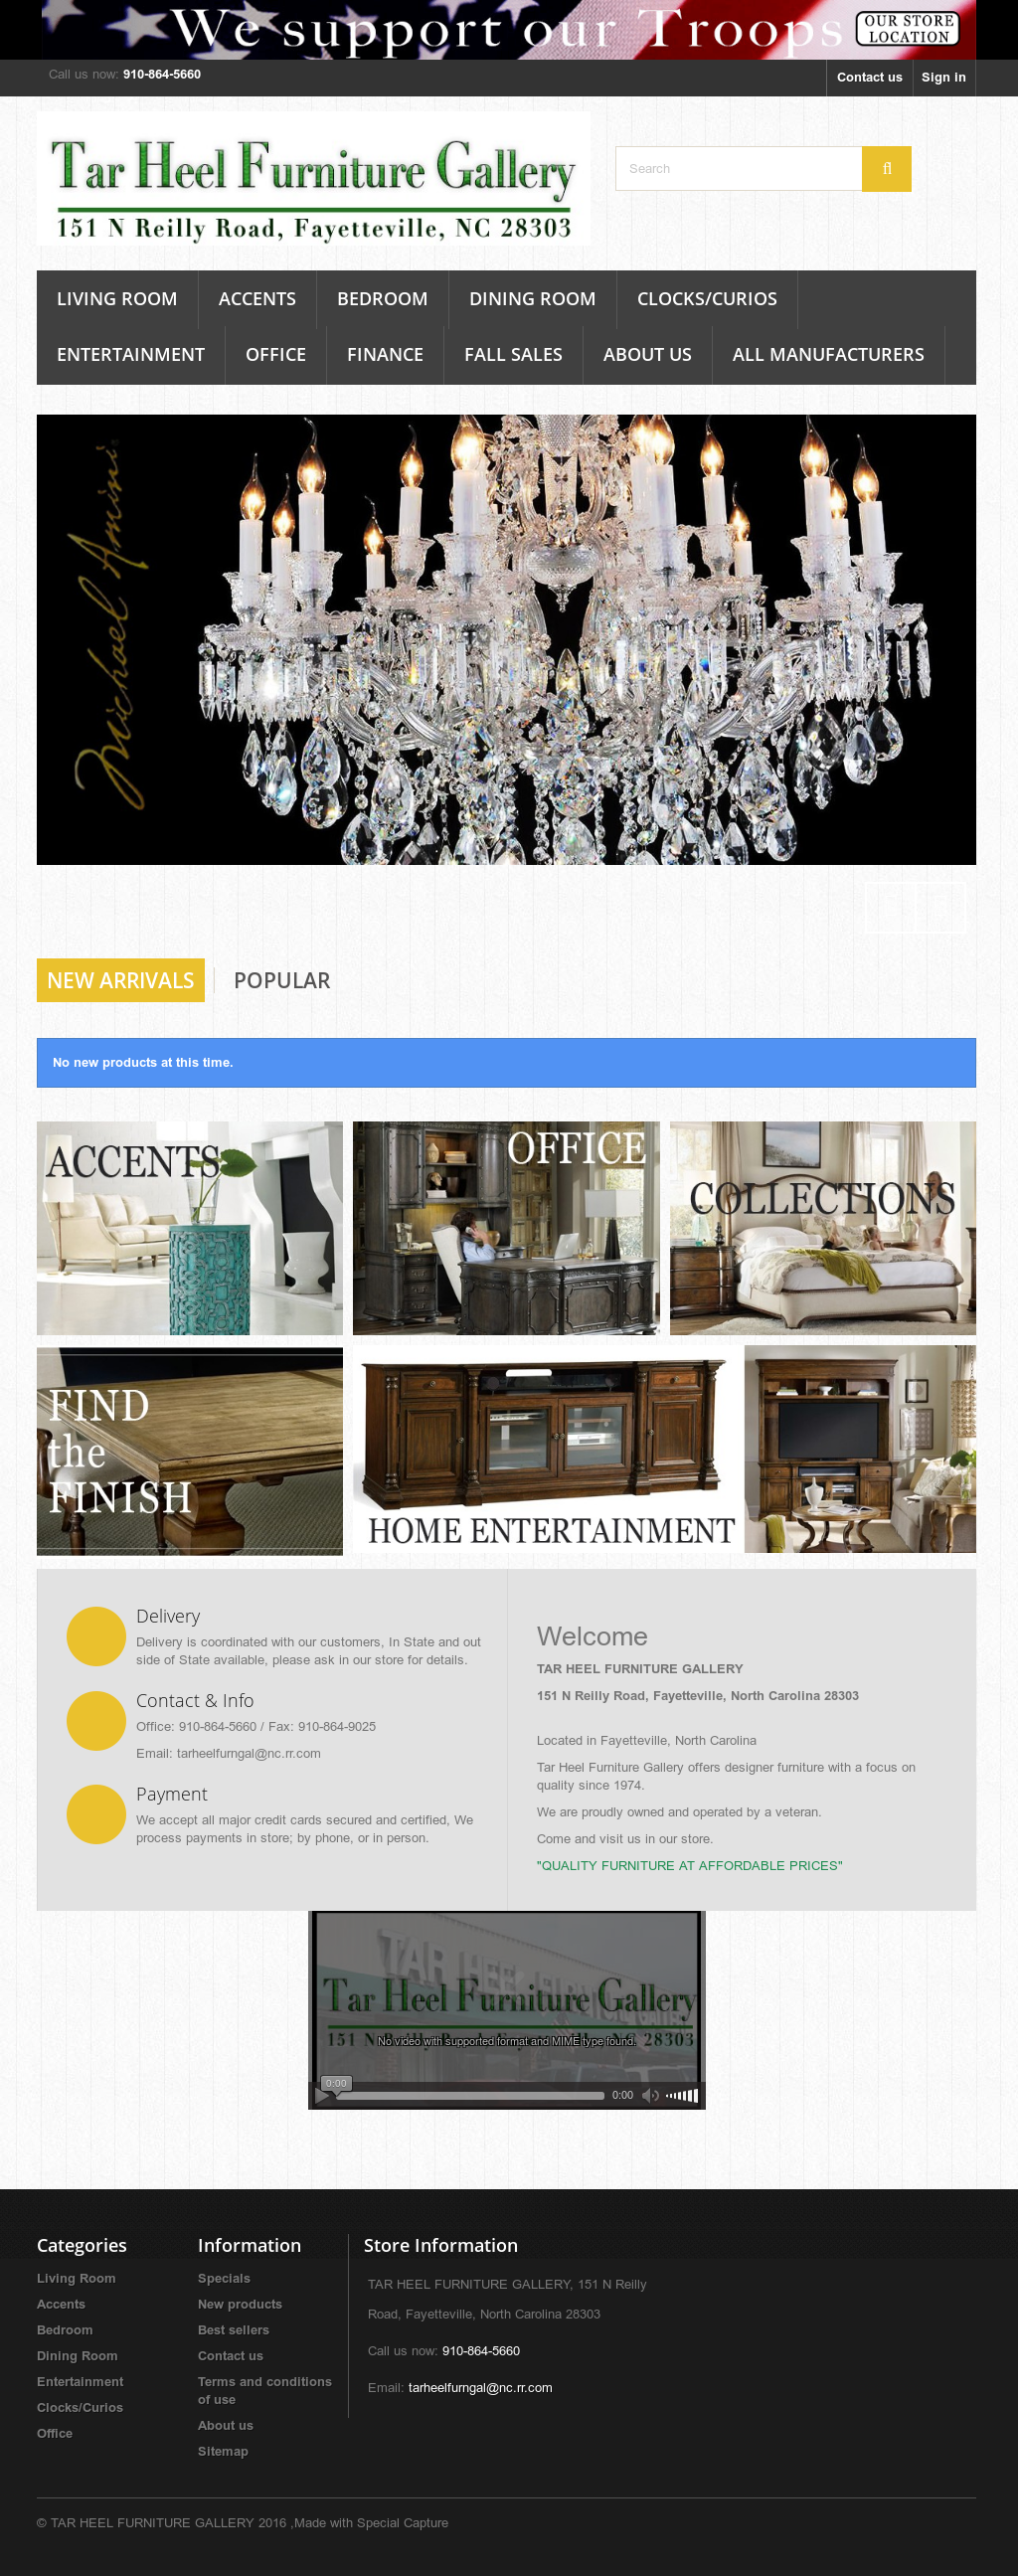 Tar Heel Furniture Gallery Website History